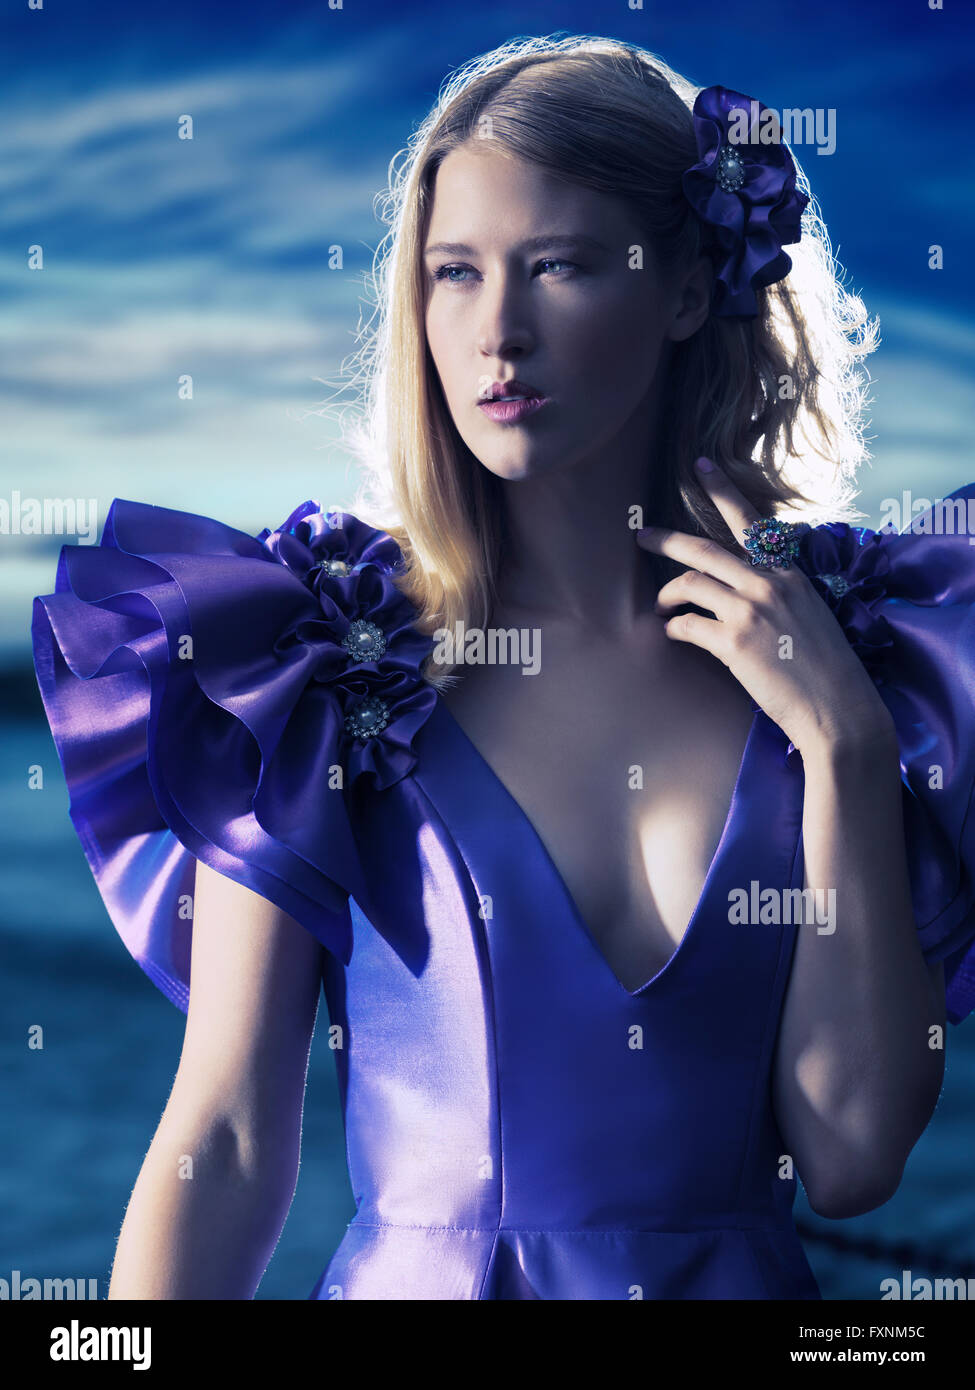 Young woman wearing an evening gown, outdoors, fashion portrait Stock Photo